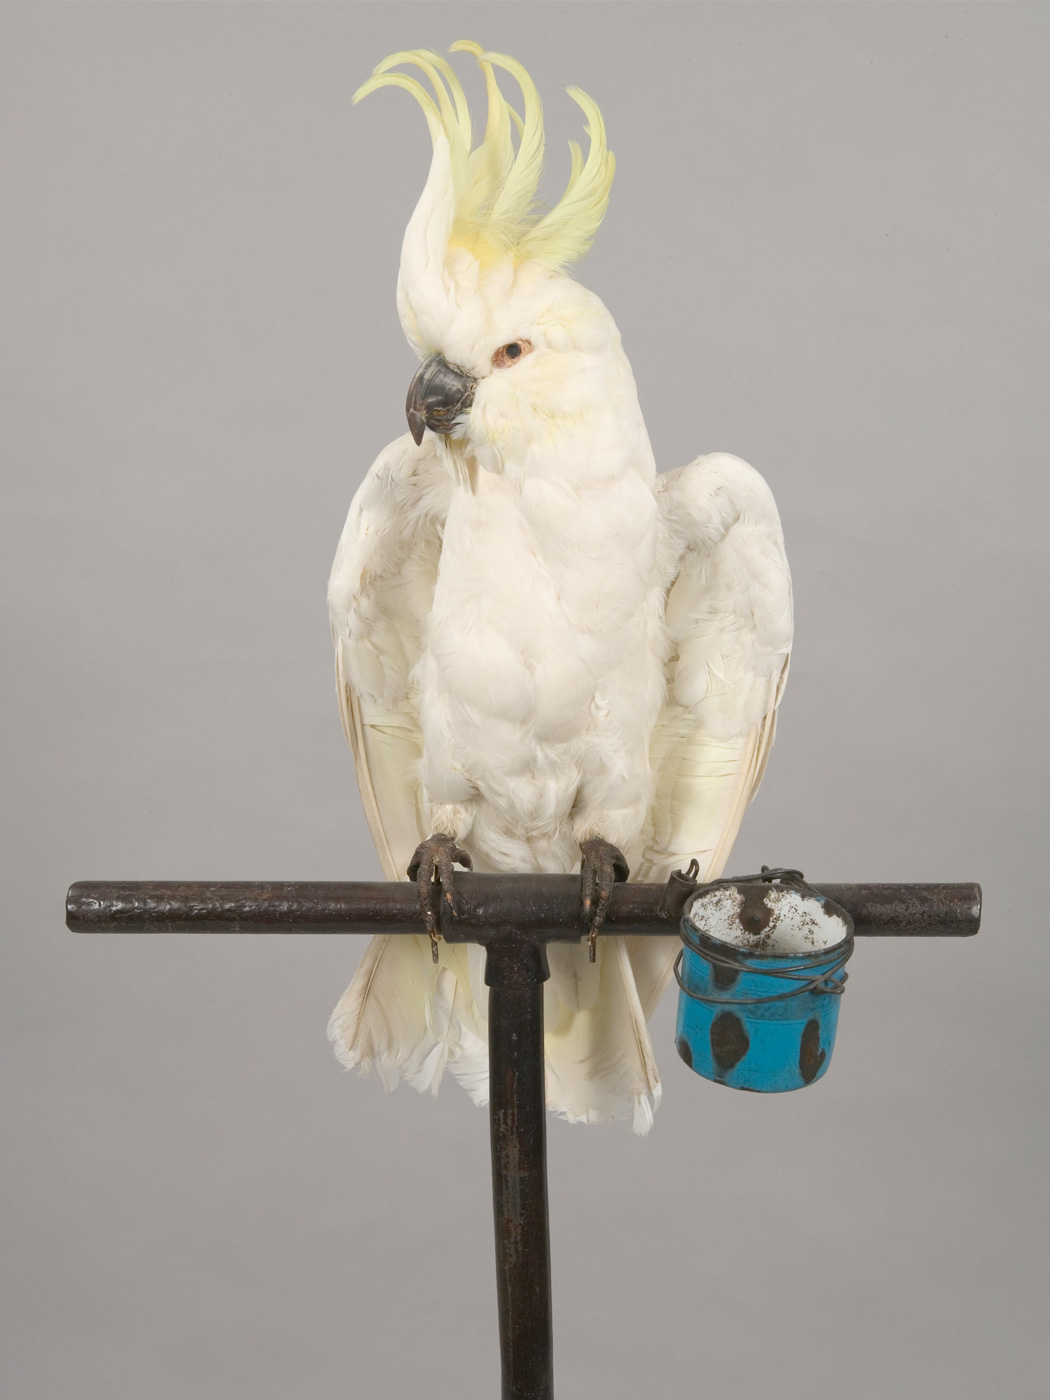 Sulphur crested cockatoo perched on a metal perch with a blue feeding bucket attached. - click to view larger image